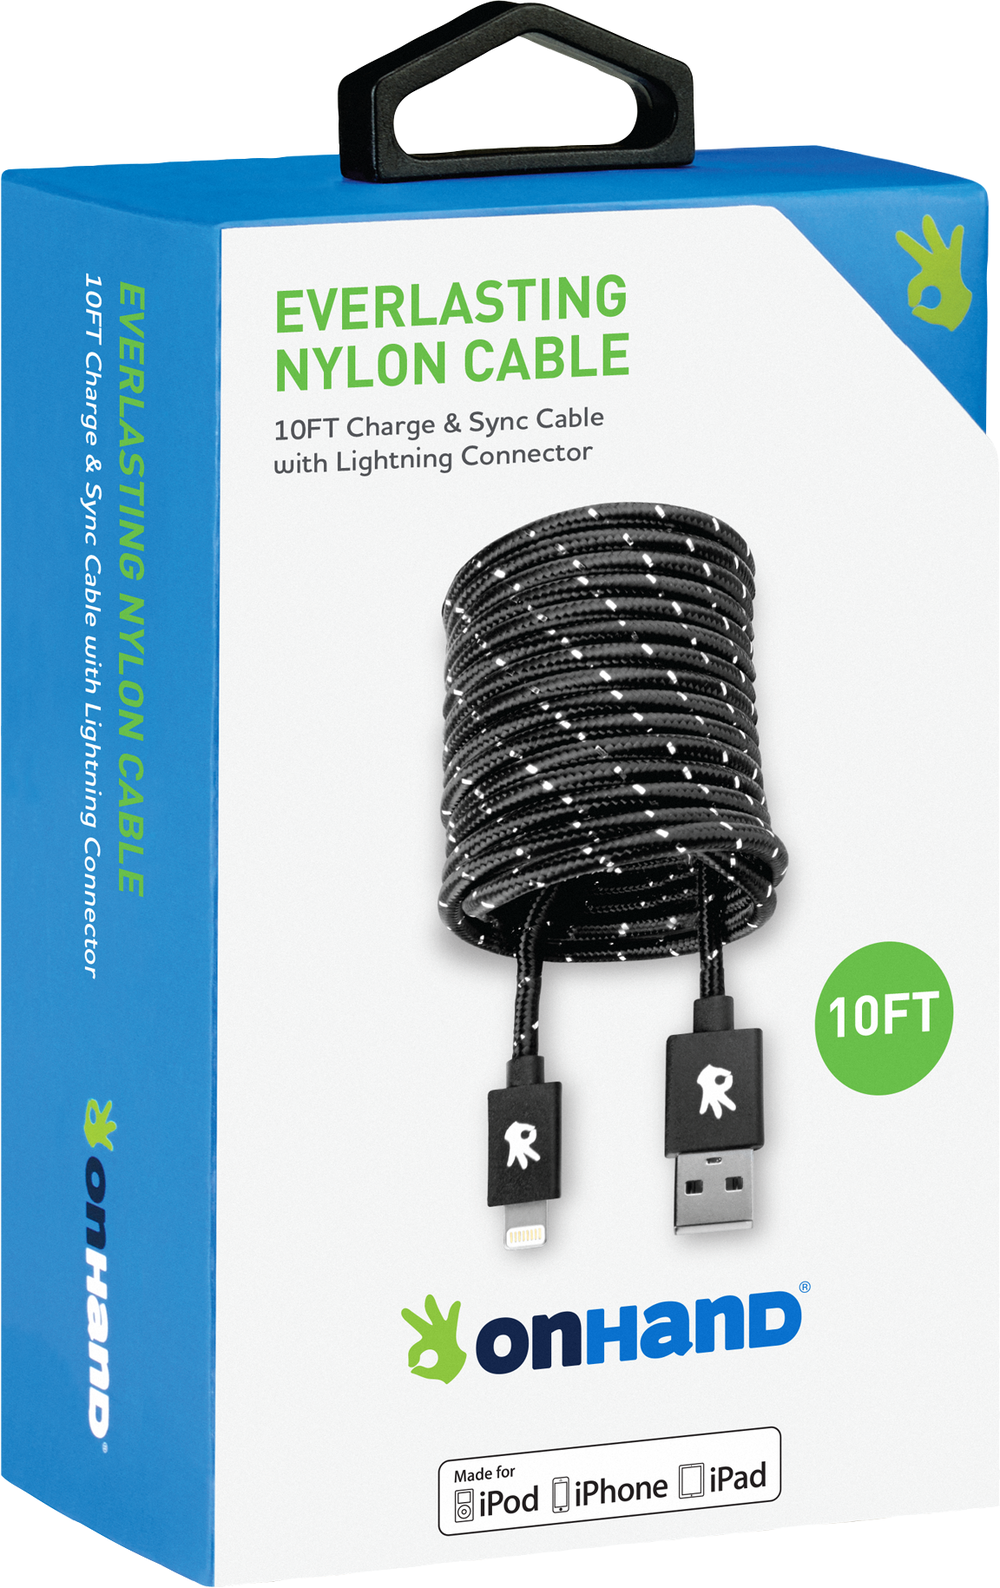 OnHand Everlasting Nylon Sync & Charge Cable - Black 10ft BP USB - Lightning-MFi Certified